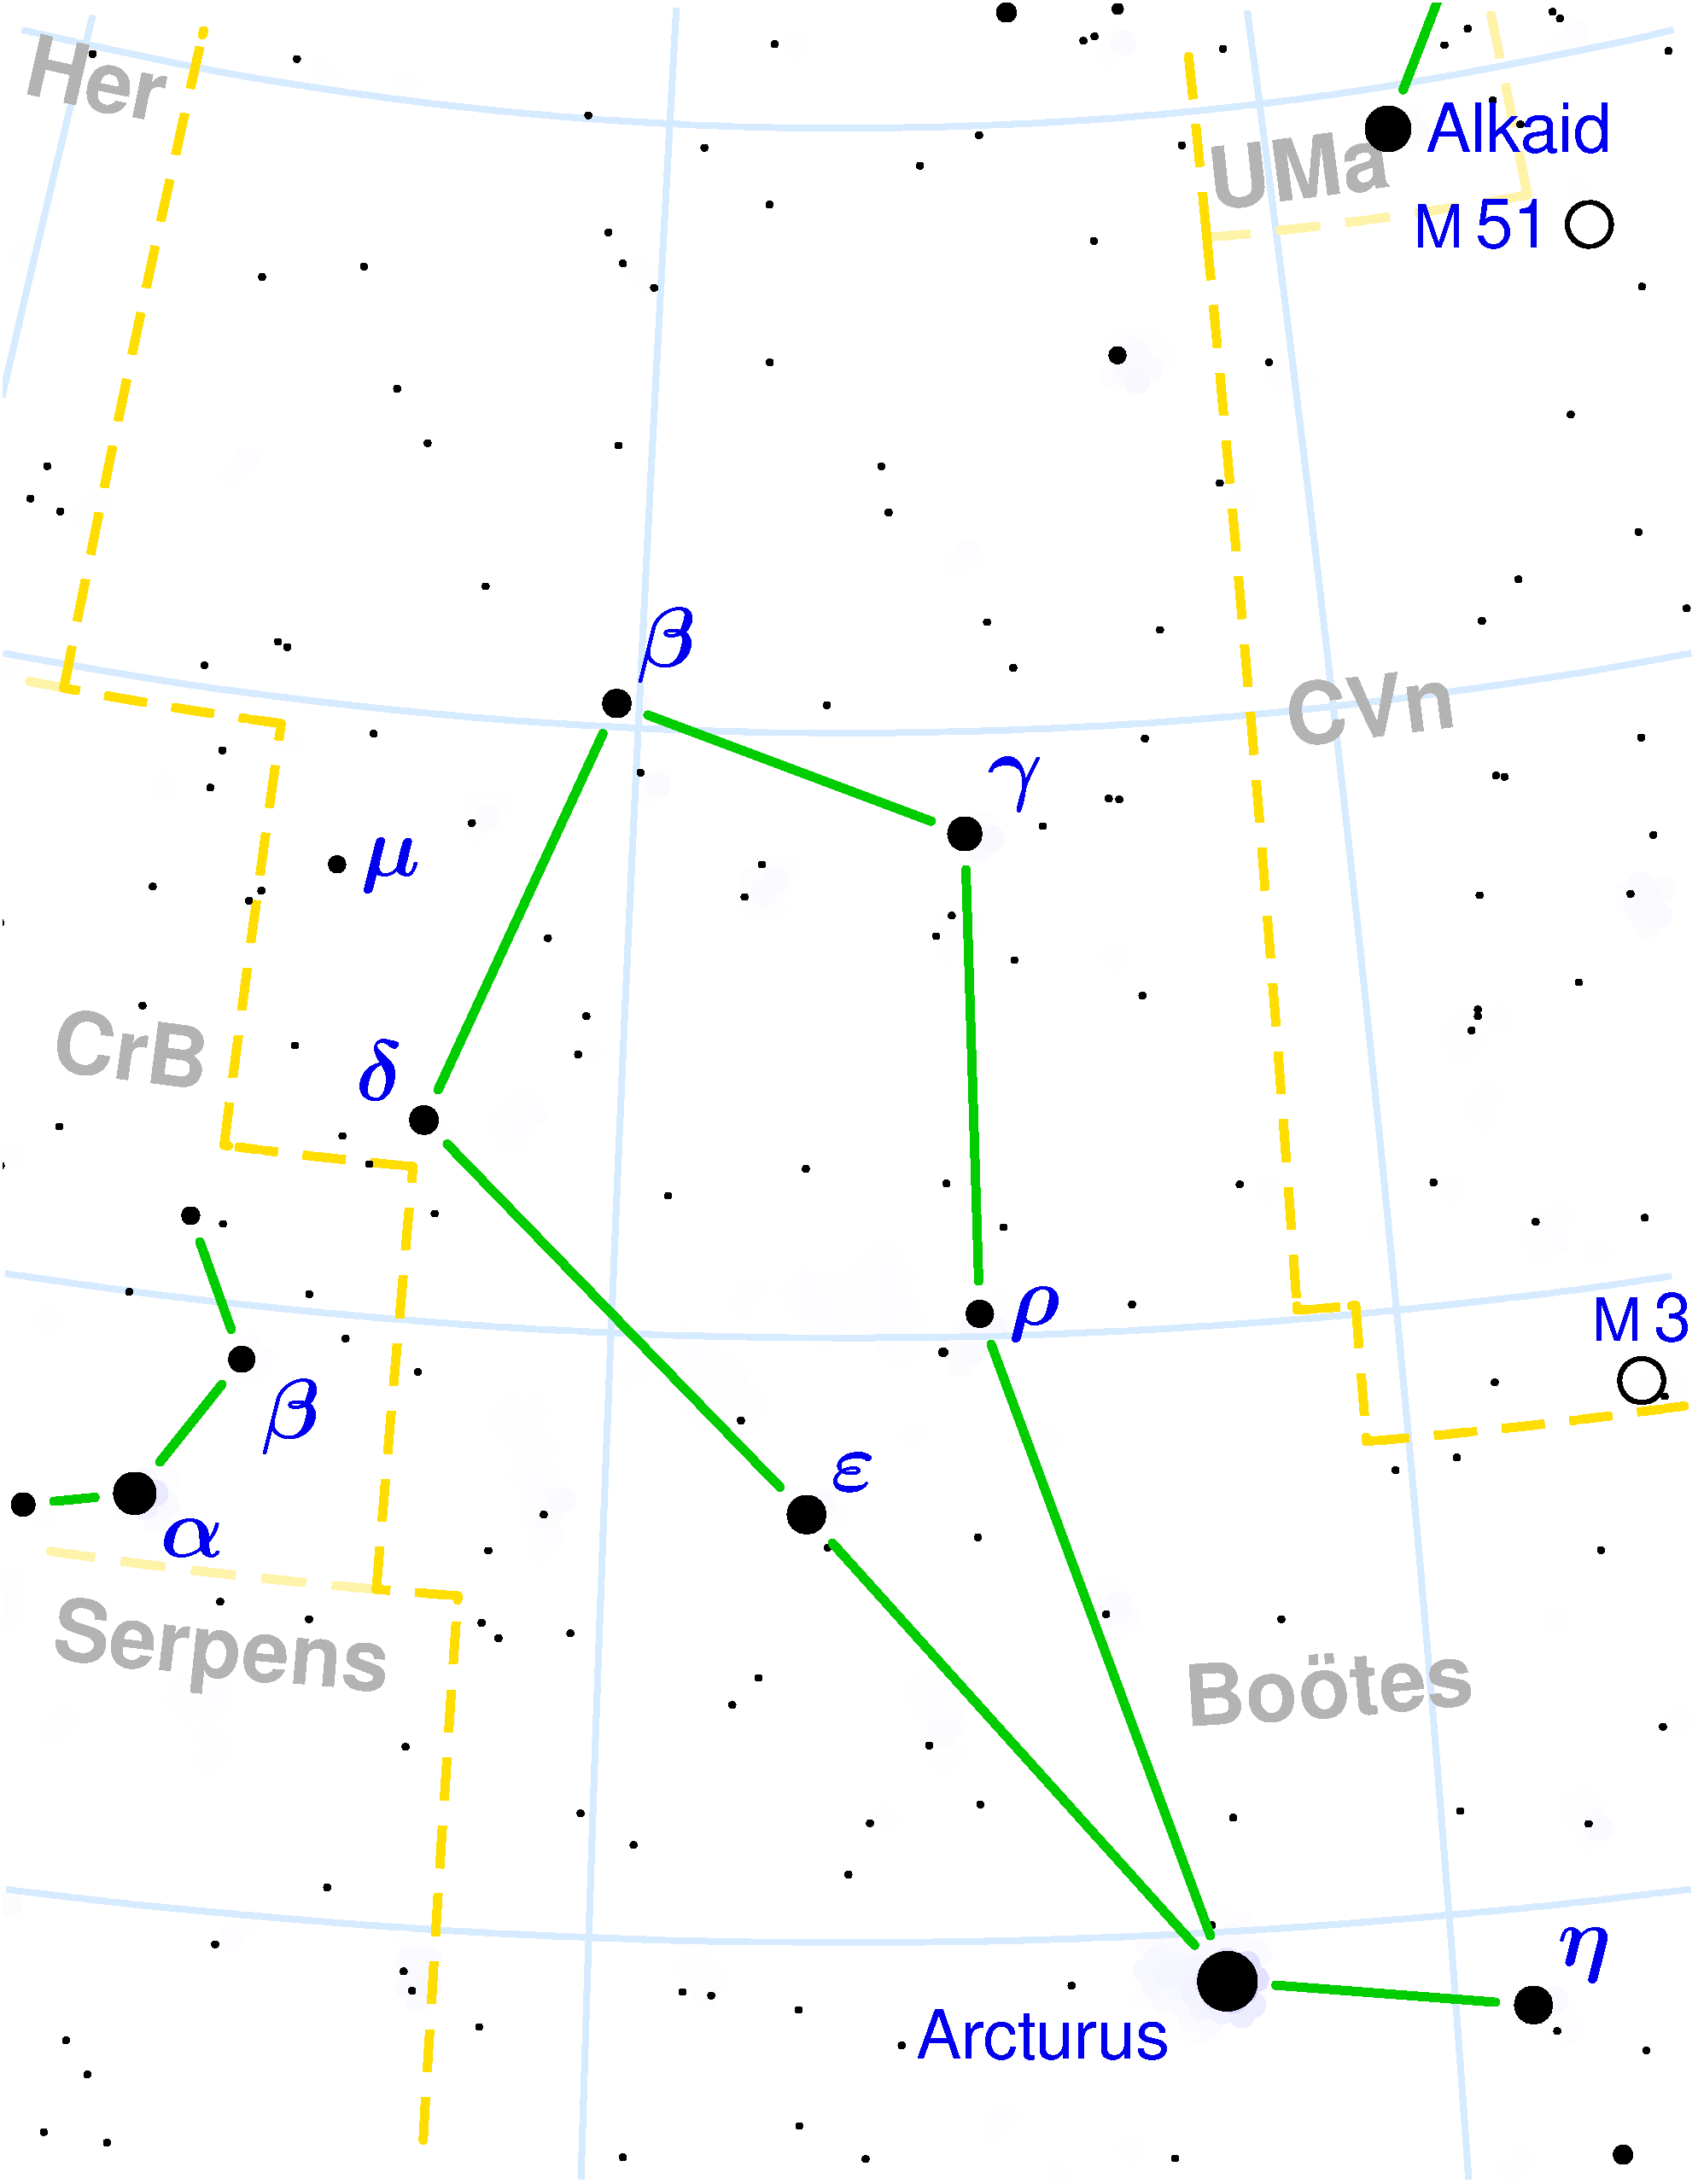 https://i2.wp.com/upload.wikimedia.org/wikipedia/commons/7/75/Bootes_constellation_map.png